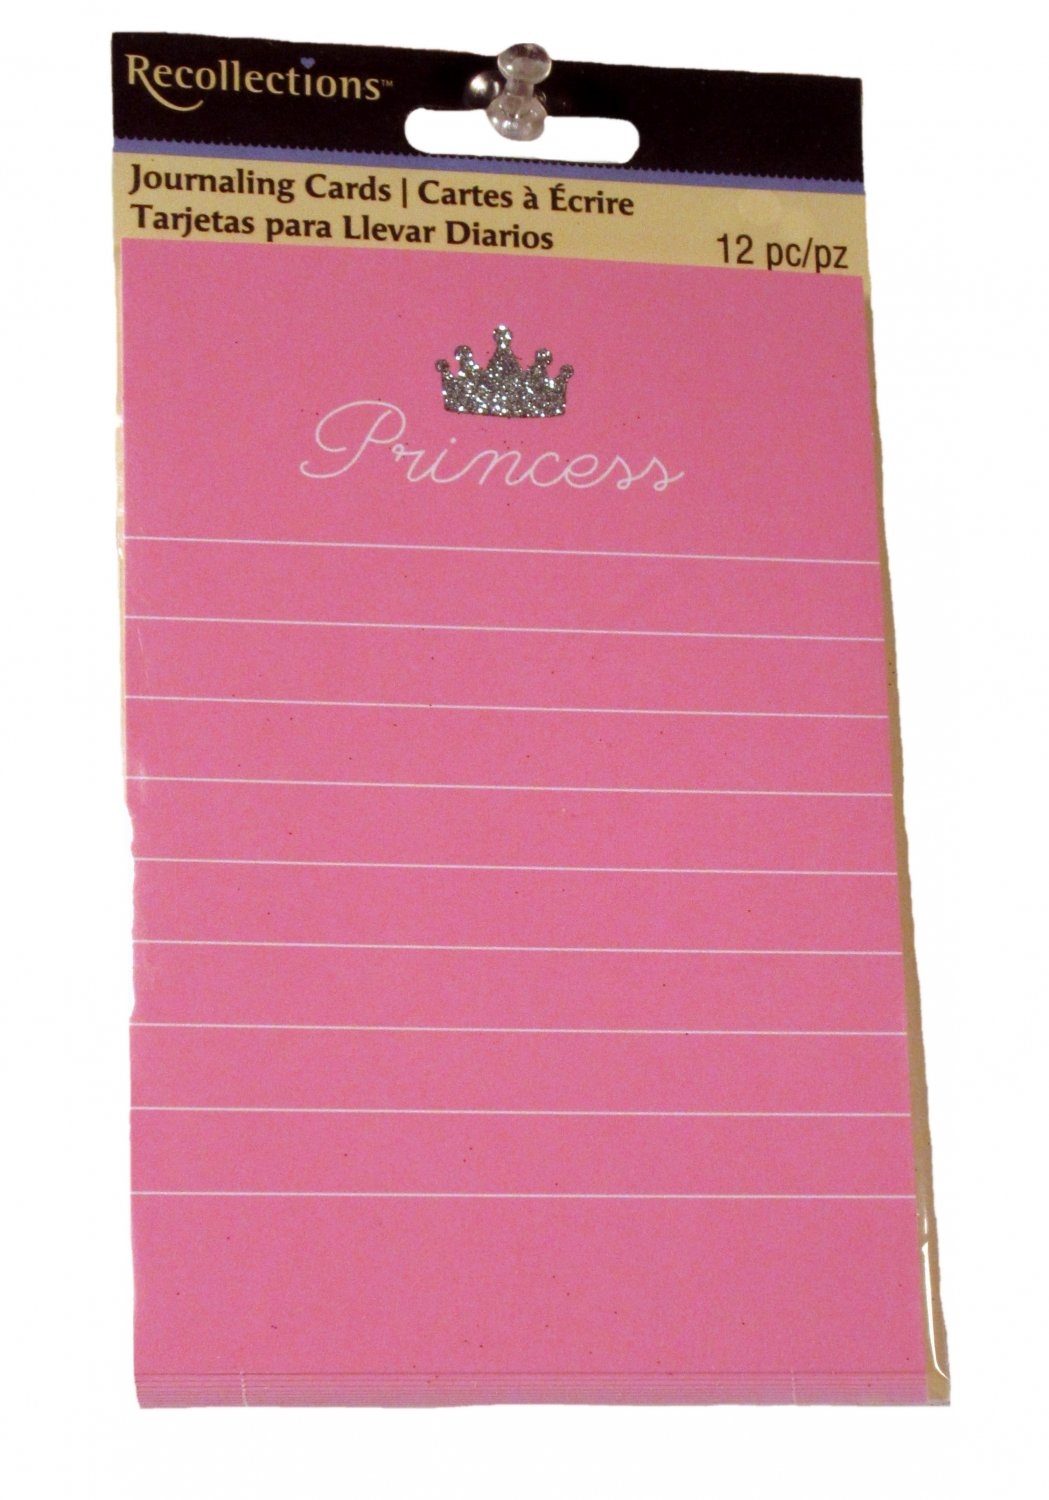 Recollections Pink Princess Lined Journal Cards